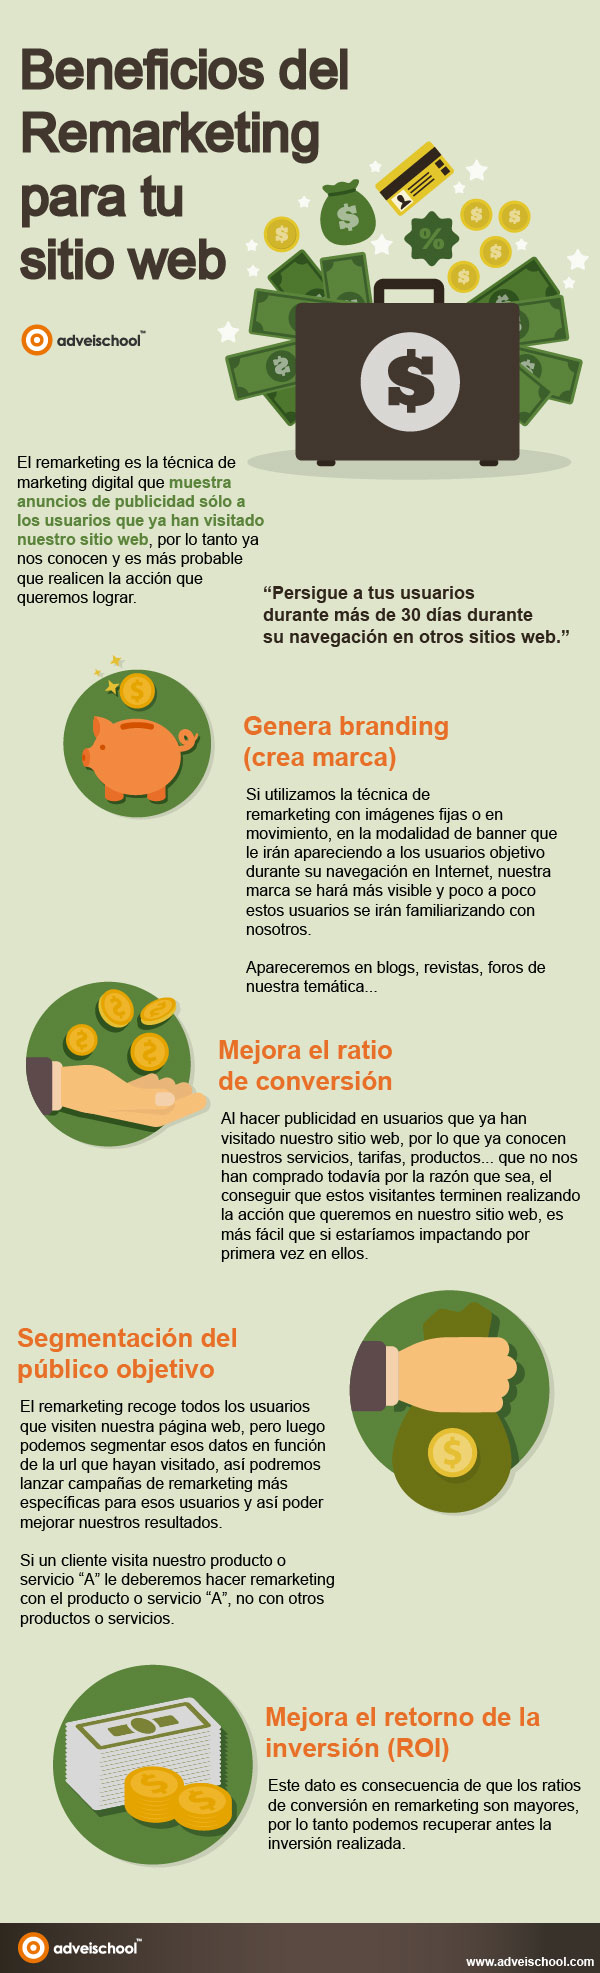 Beneficios del remarketing para tu sitio web